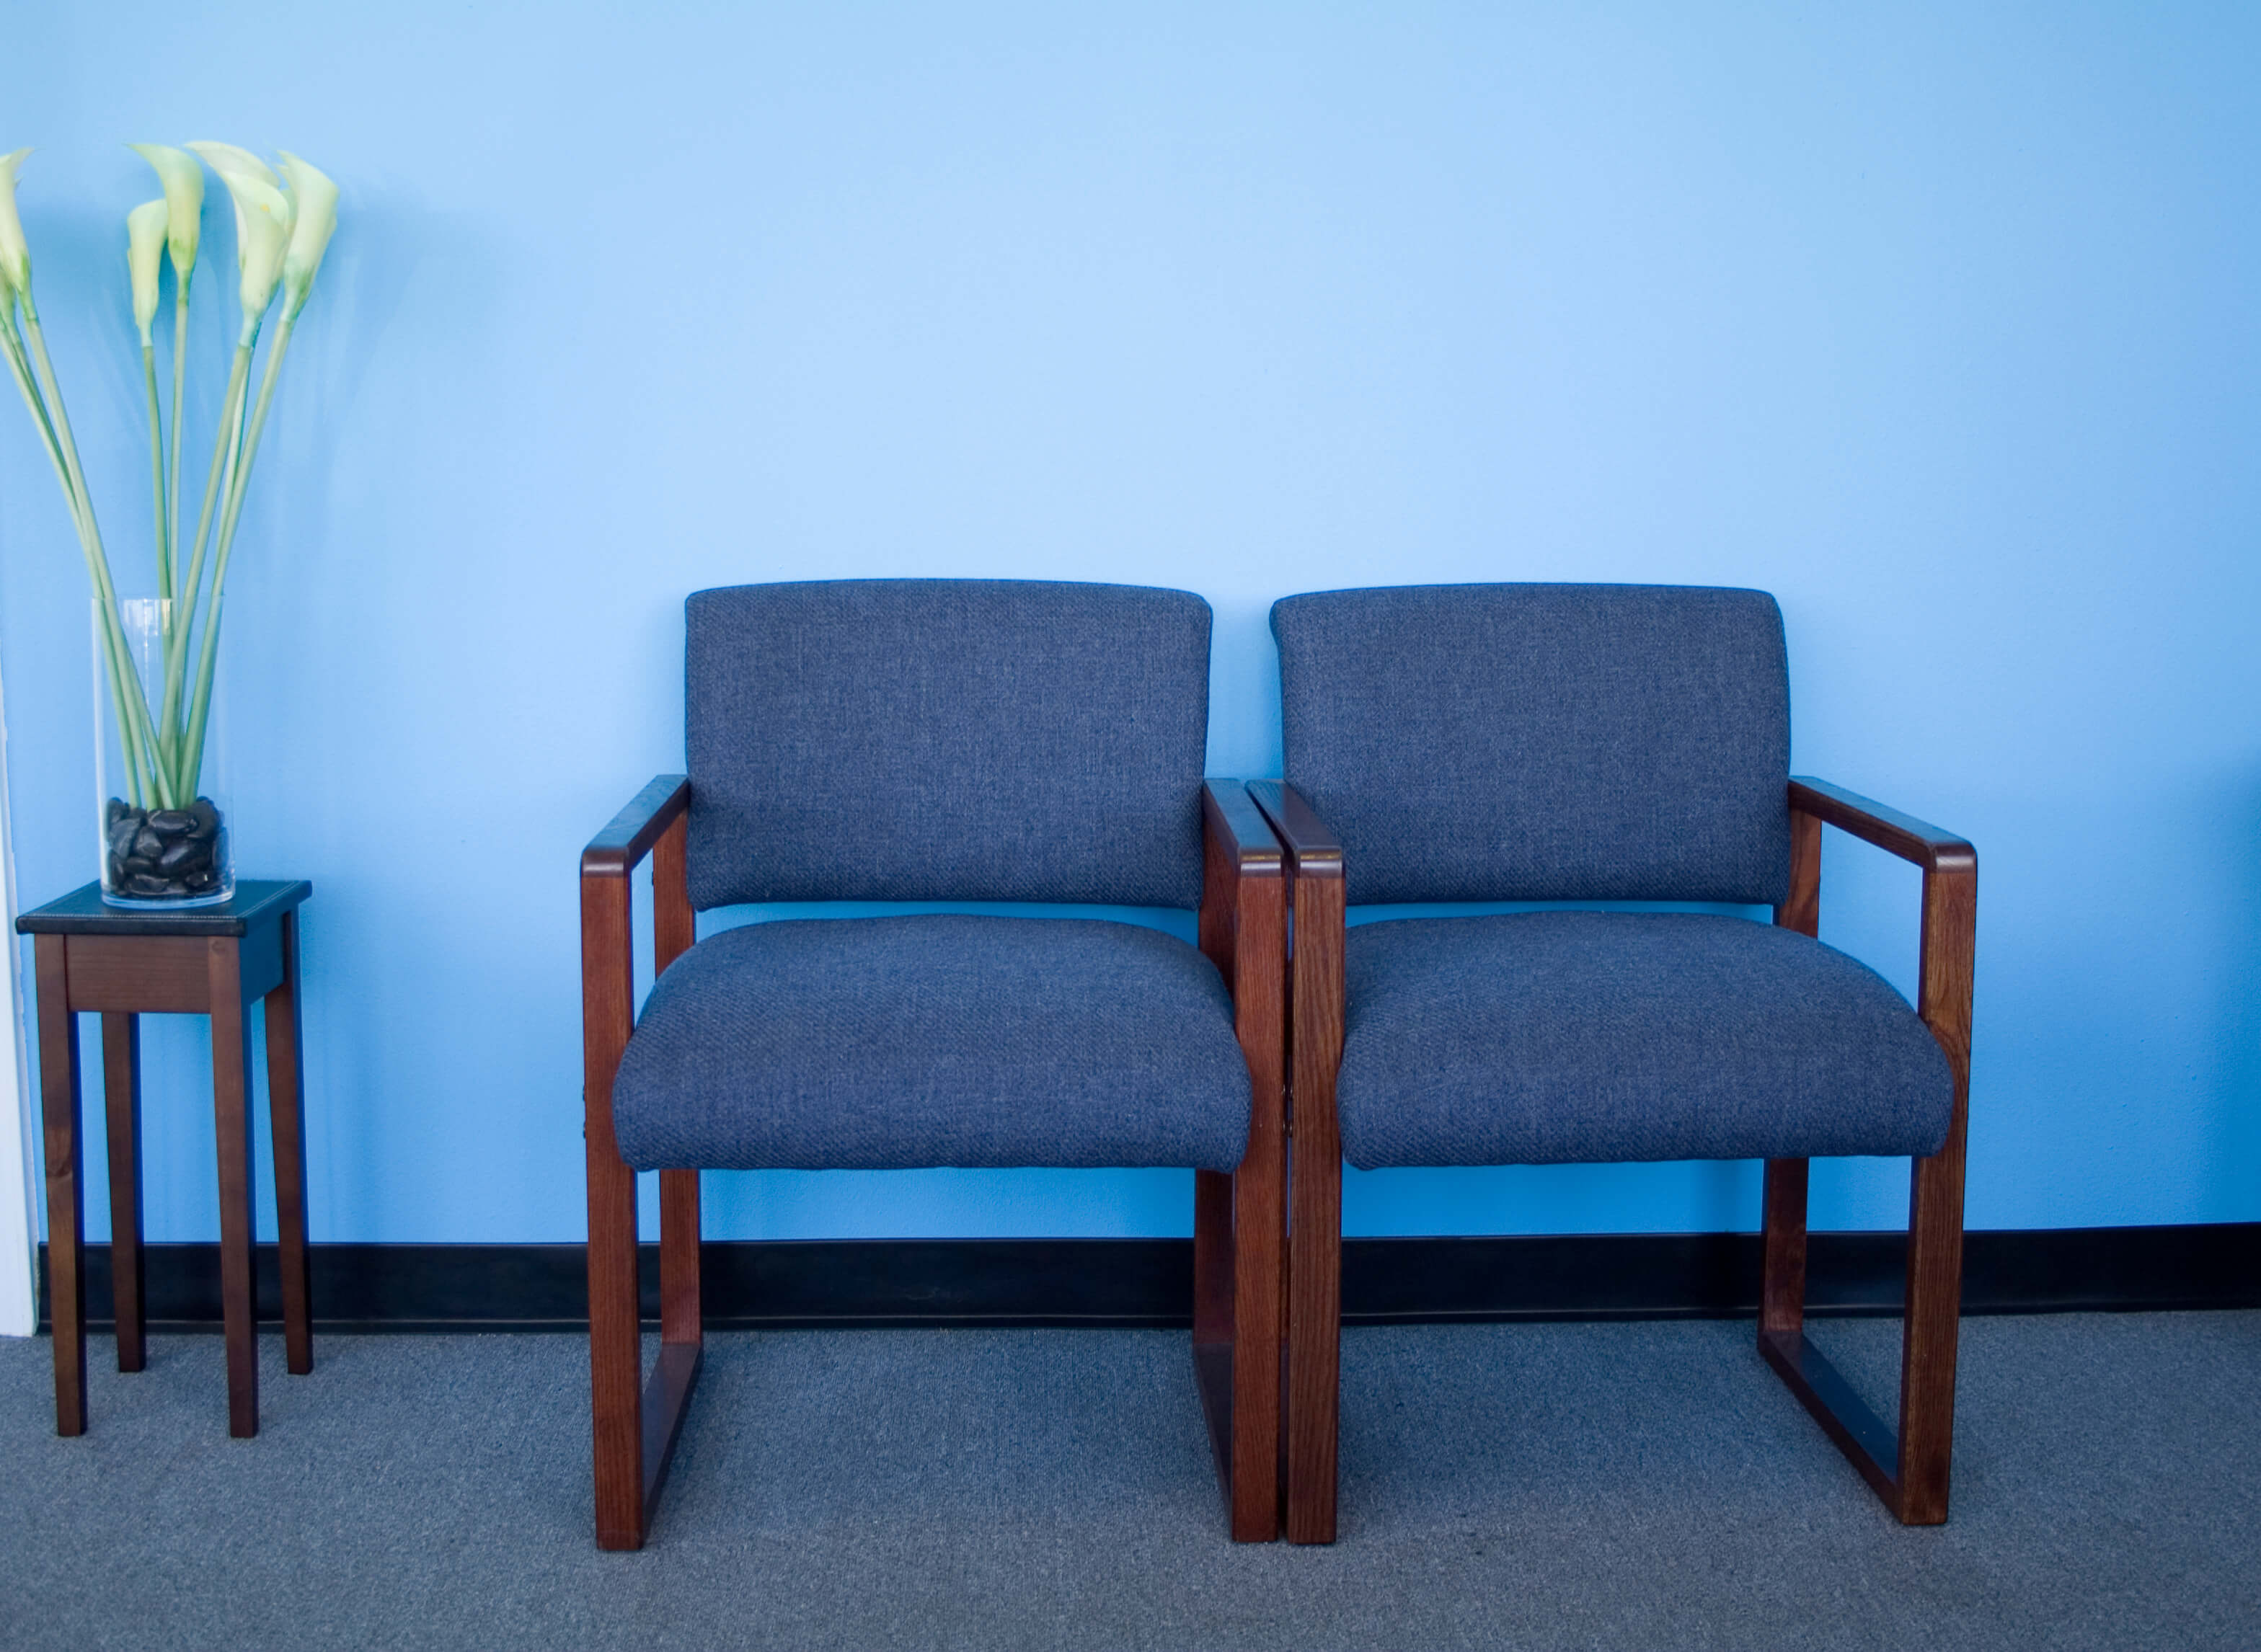 Use no-show policies to fill those empty chairs